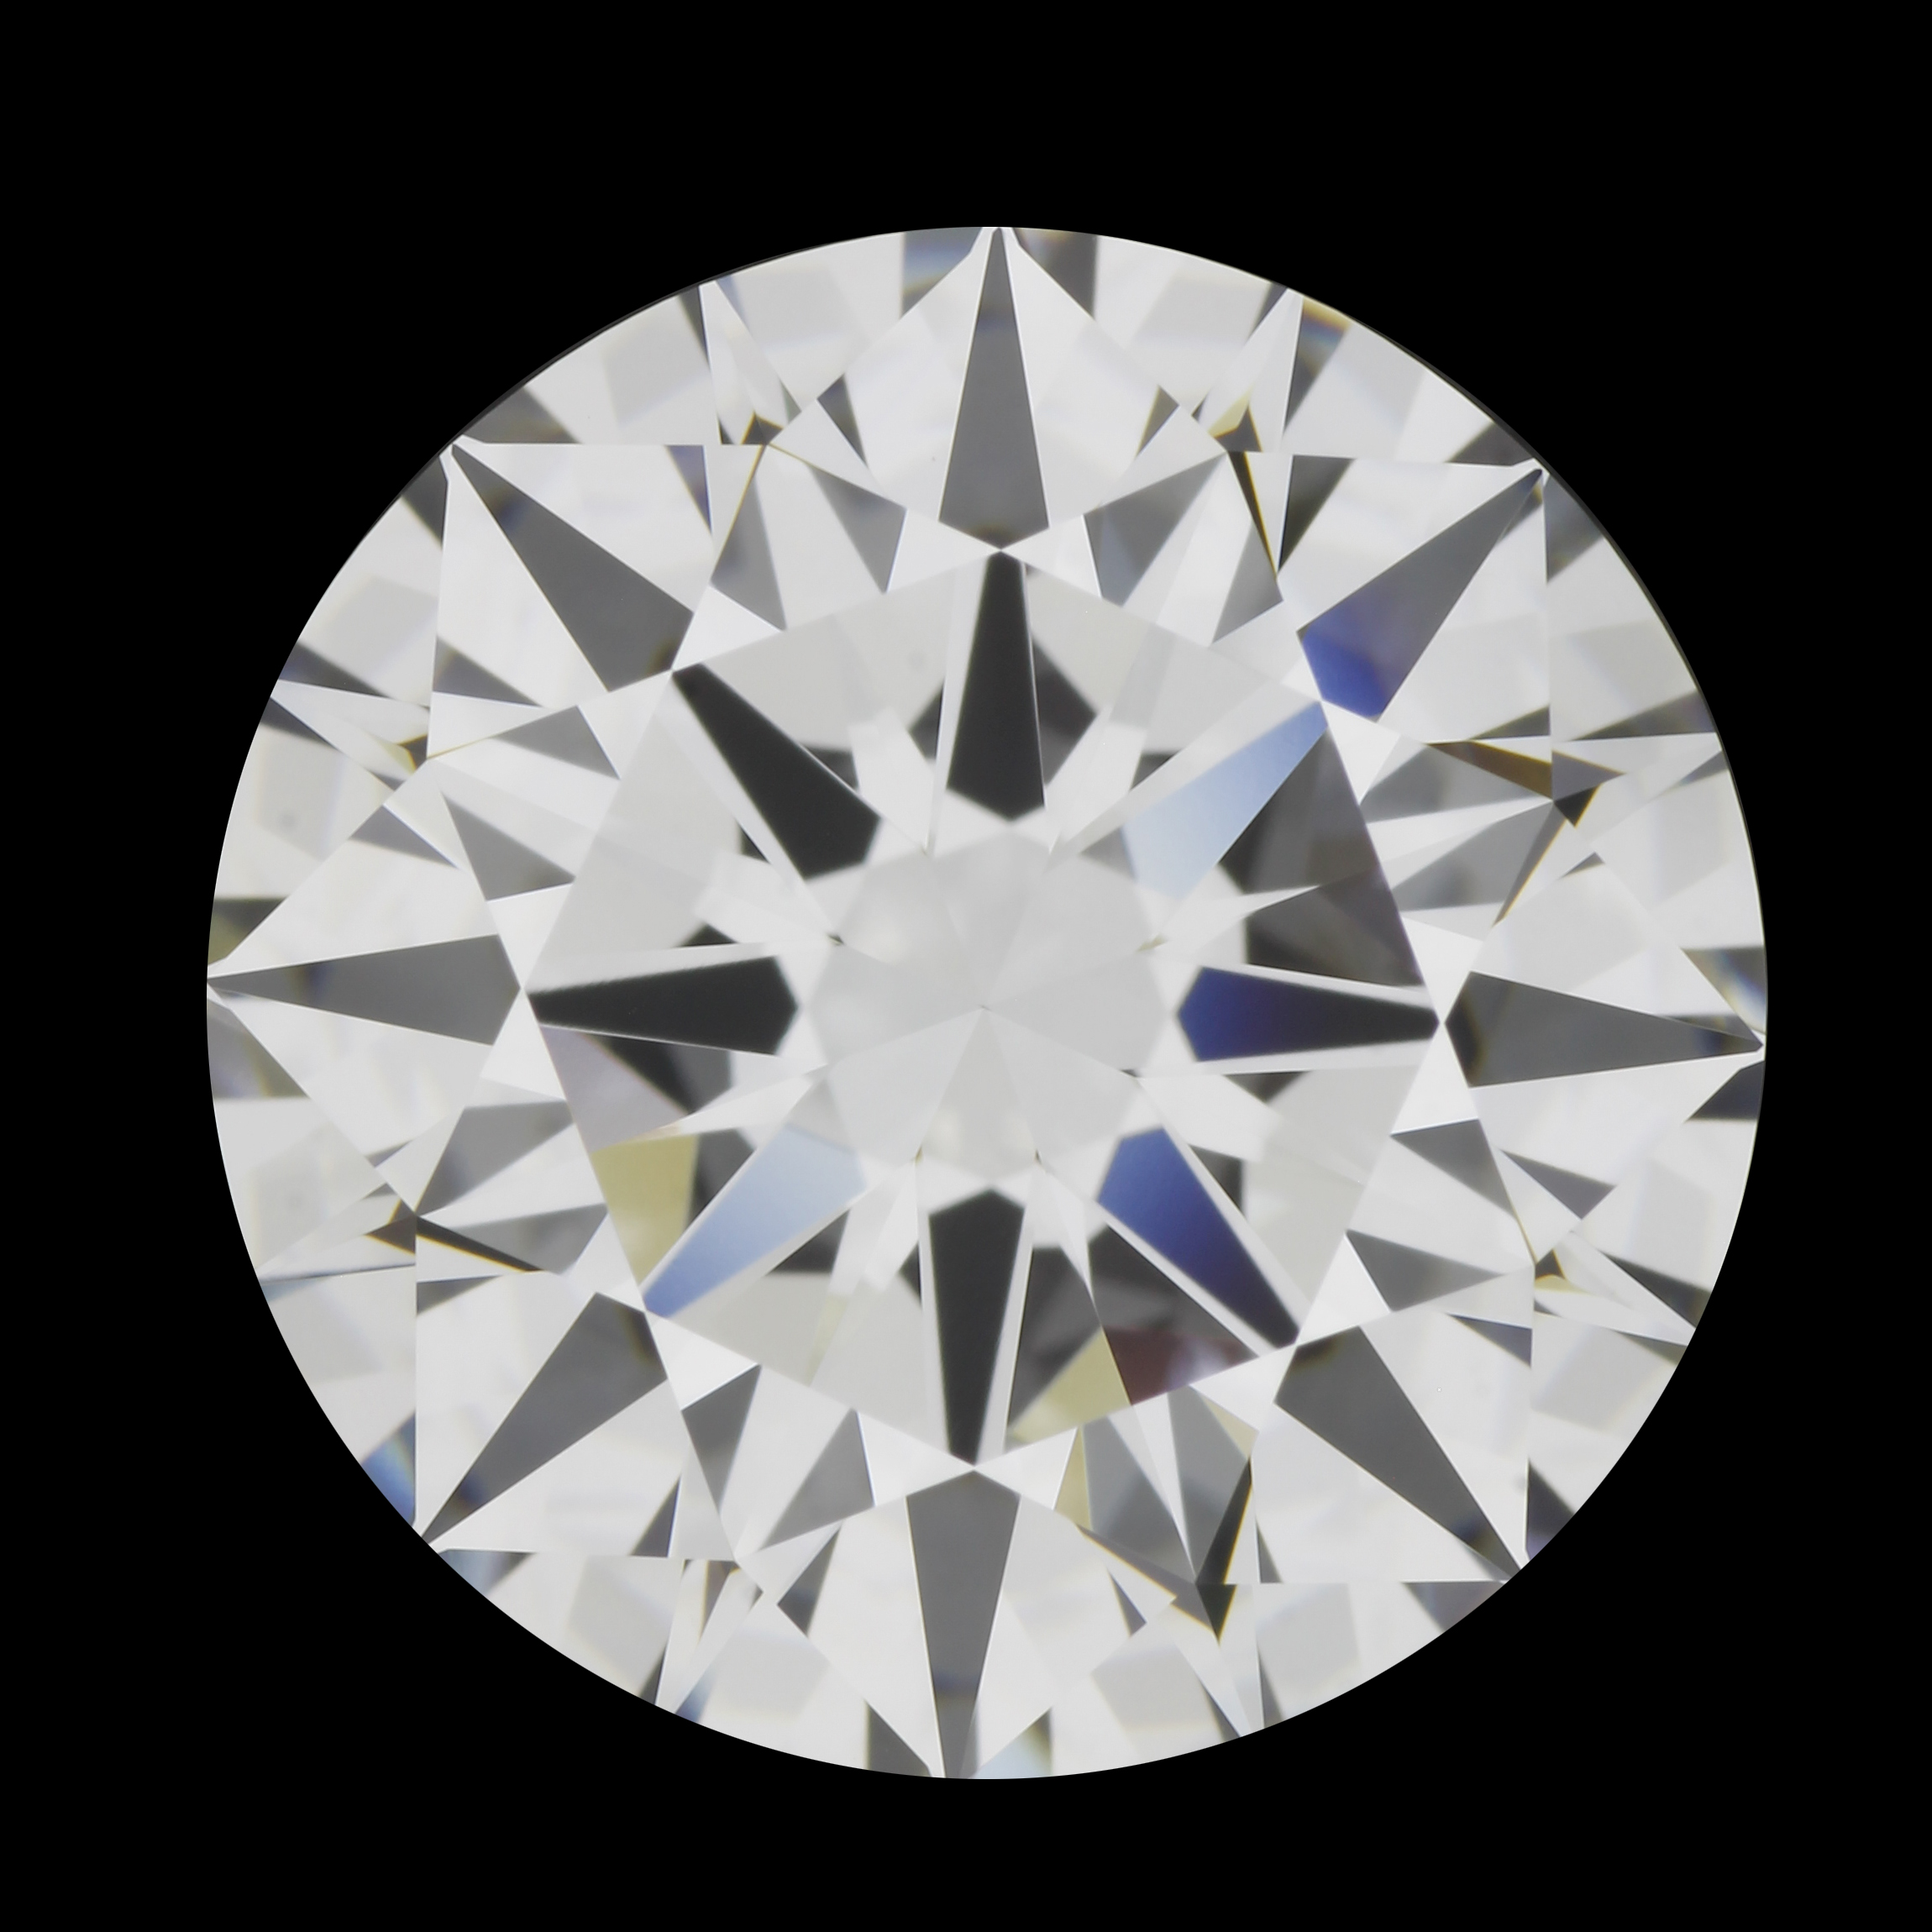 ca round diamond brilliant lots bukobject faceted zirconia small en and cts cubic cut fullsize ring diamonds with